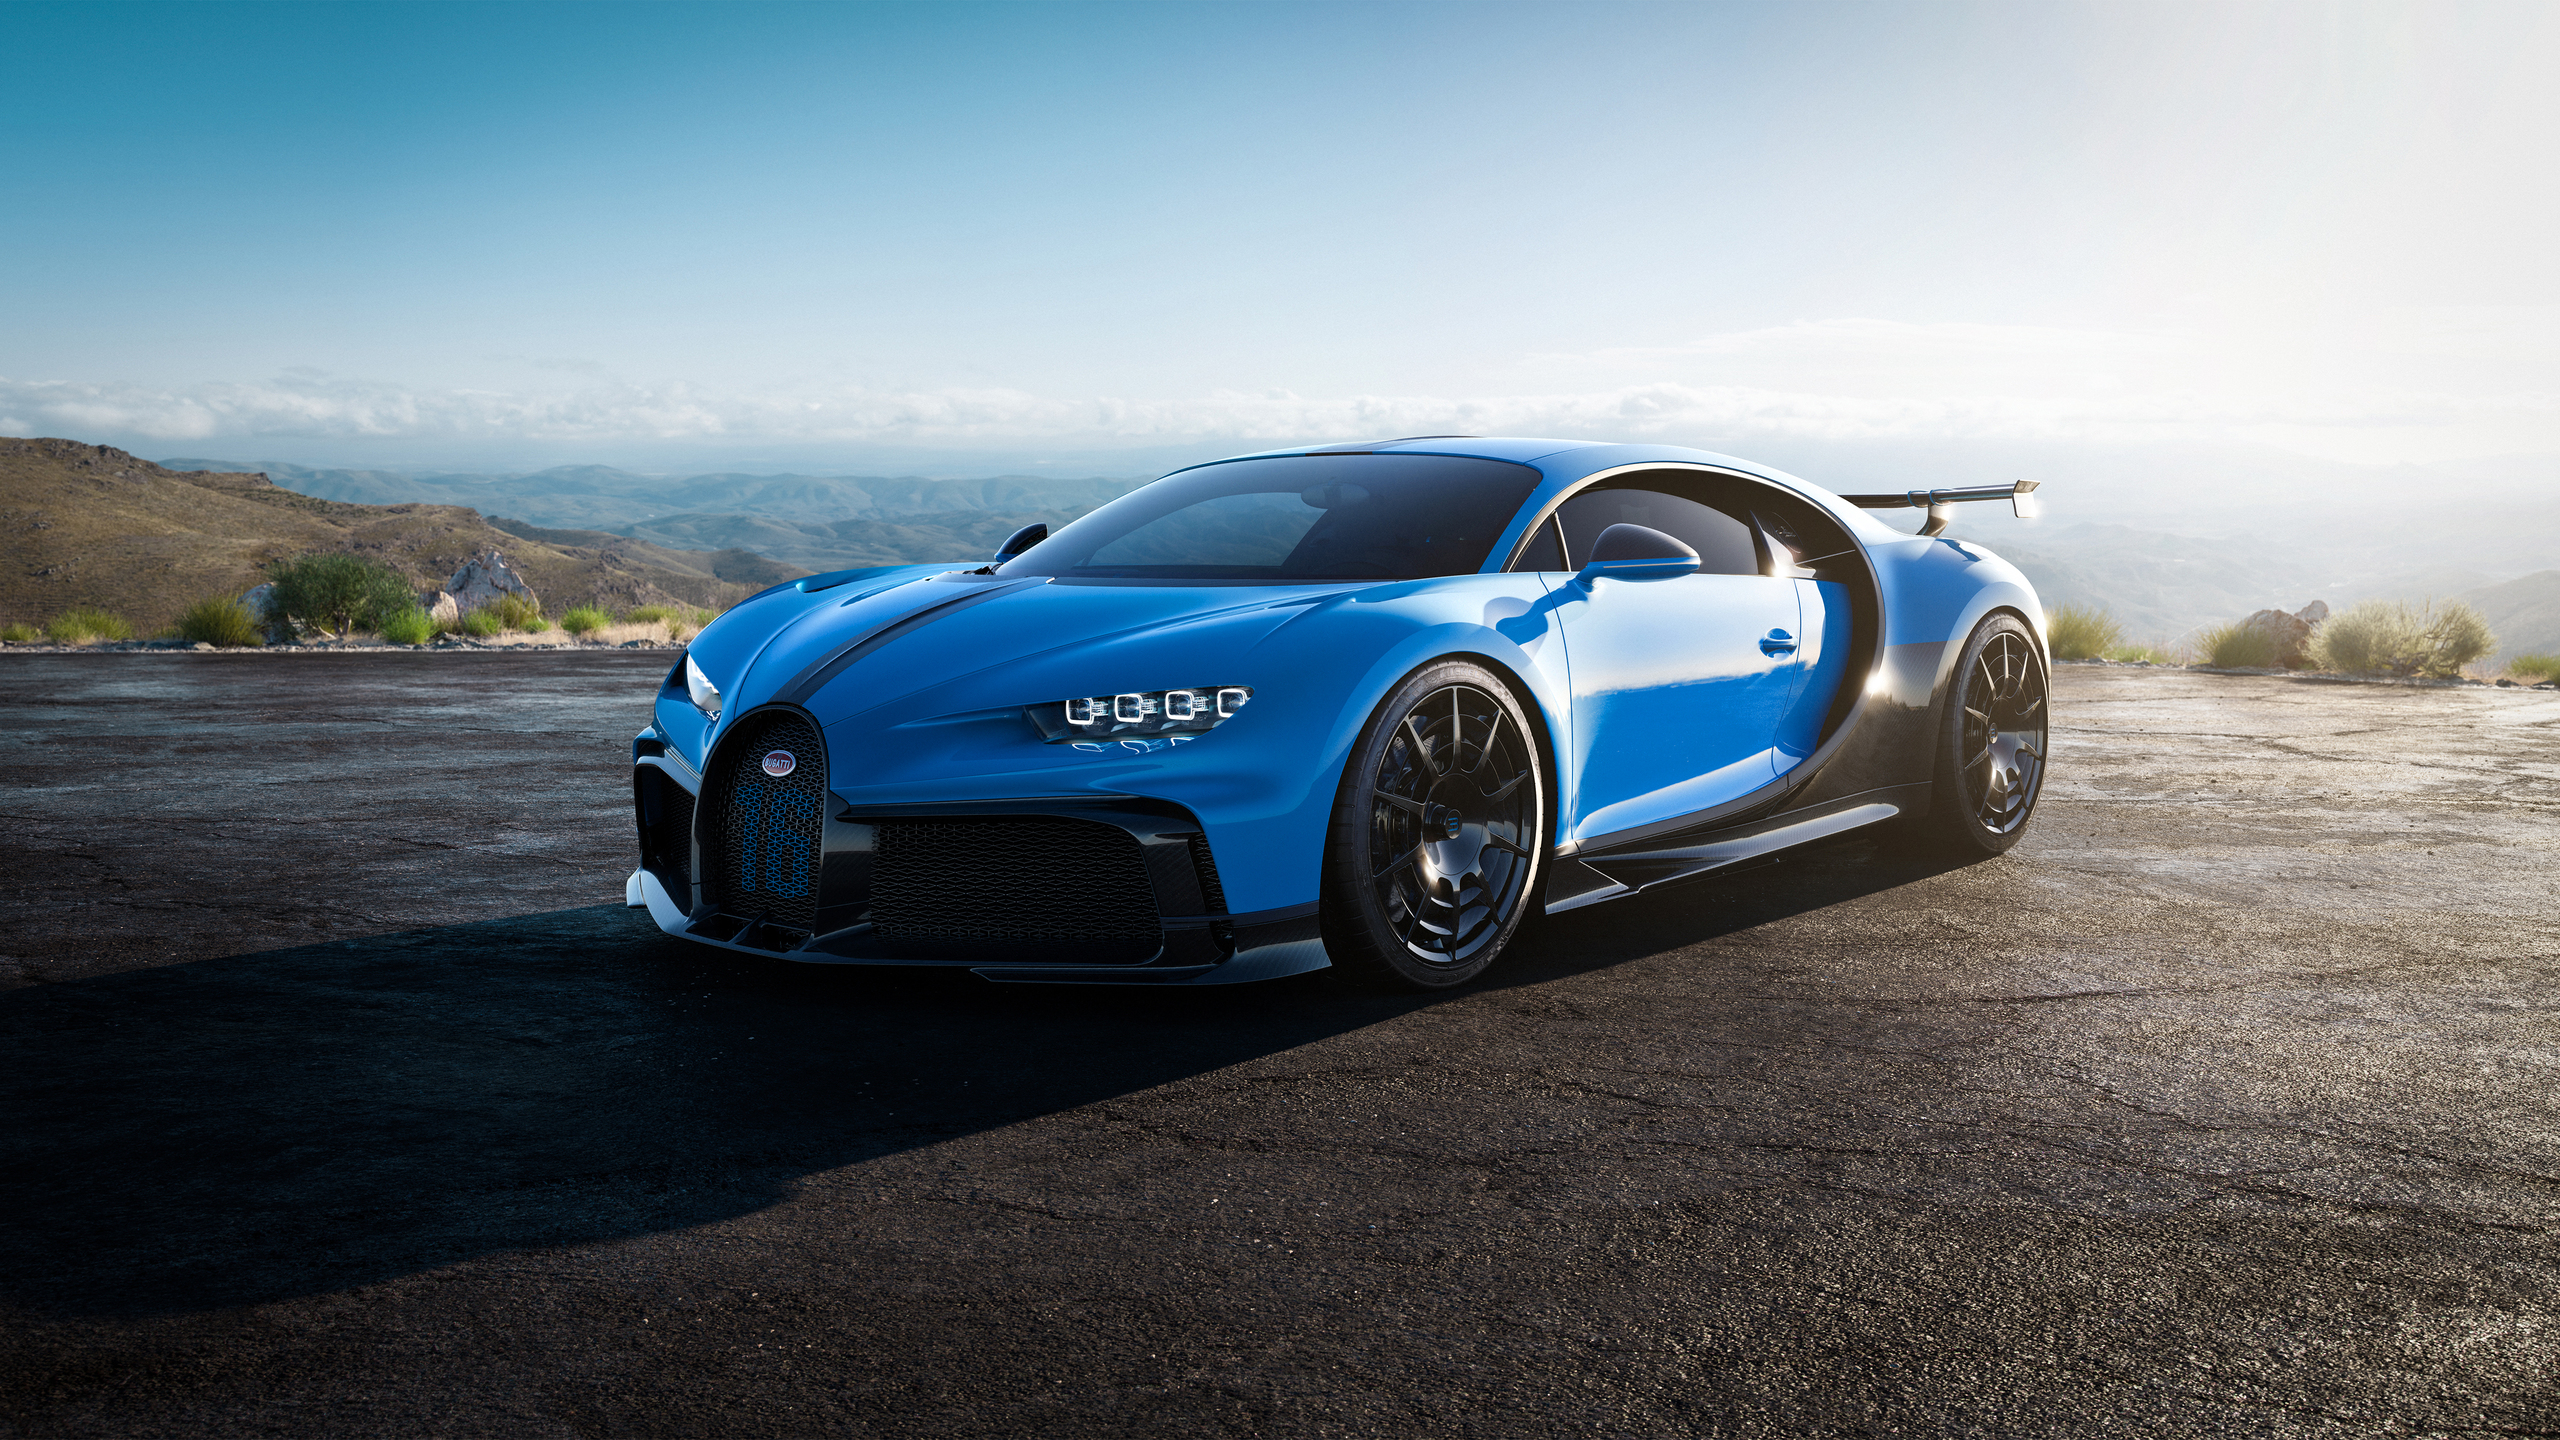 2560x1440 2020 Bugatti Chiron Pur Sport Car 1440p Resolution Hd 4k Wallpapers Images Backgrounds Photos And Pictures